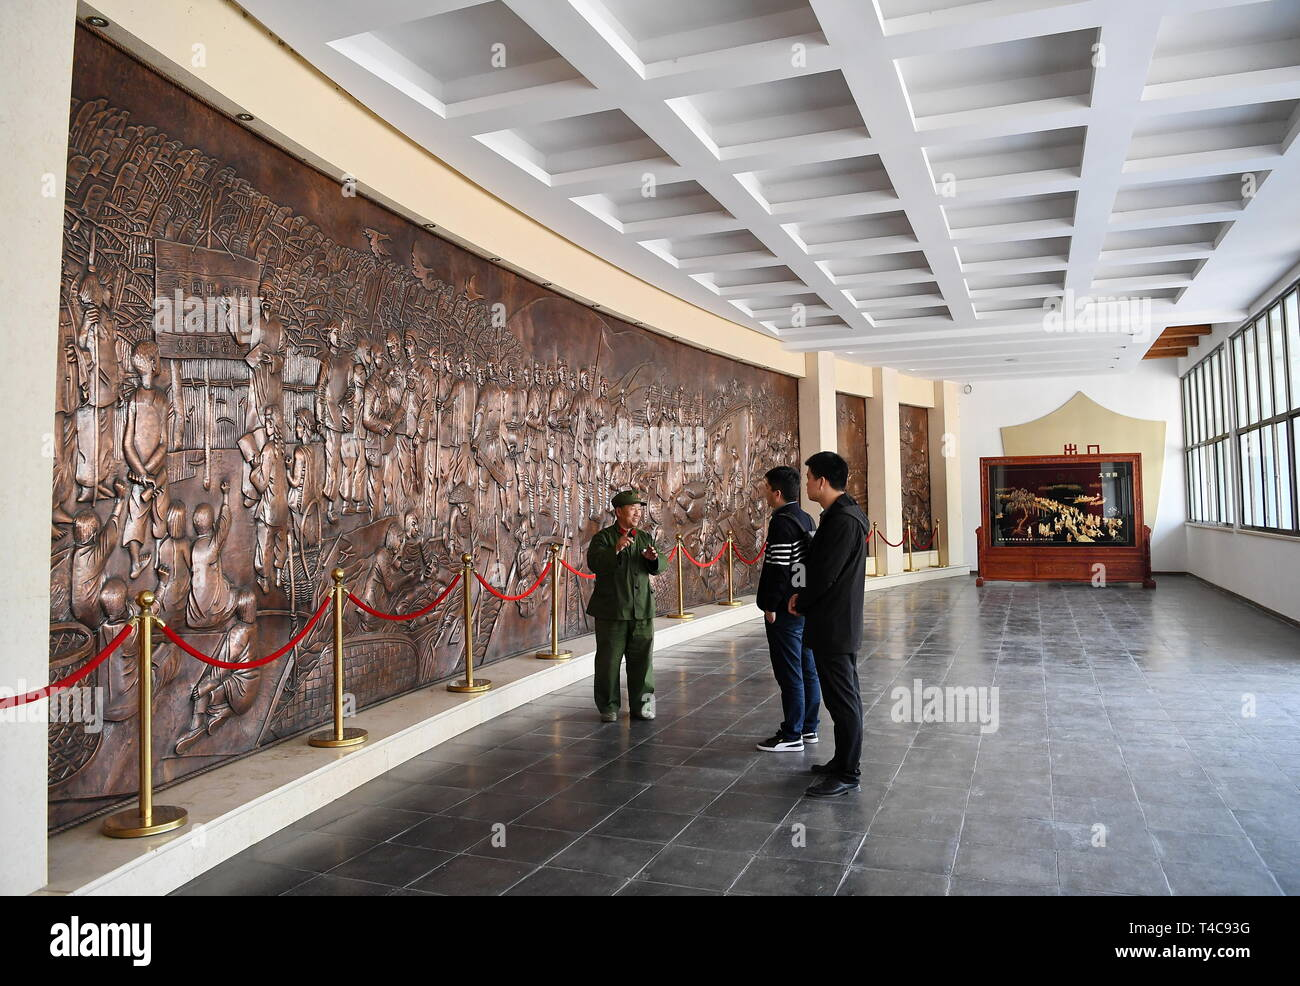 Shijiazhuang, China's Hebei Province. 10th Apr, 2019. Wang Mutou (1st, L) interprets at Baiyangdian memorial hall of anti-Japanese war in Xiongan New Area, north China's Hebei Province, April 10, 2019. Restoration work has started in Baiyangdian Lake, northern China's largest freshwater body. High-pollution and energy-intensive production has been tackled. As a result, water quality has improved remarkably. Credit: Mu Yu/Xinhua/Alamy Live News - Stock Image